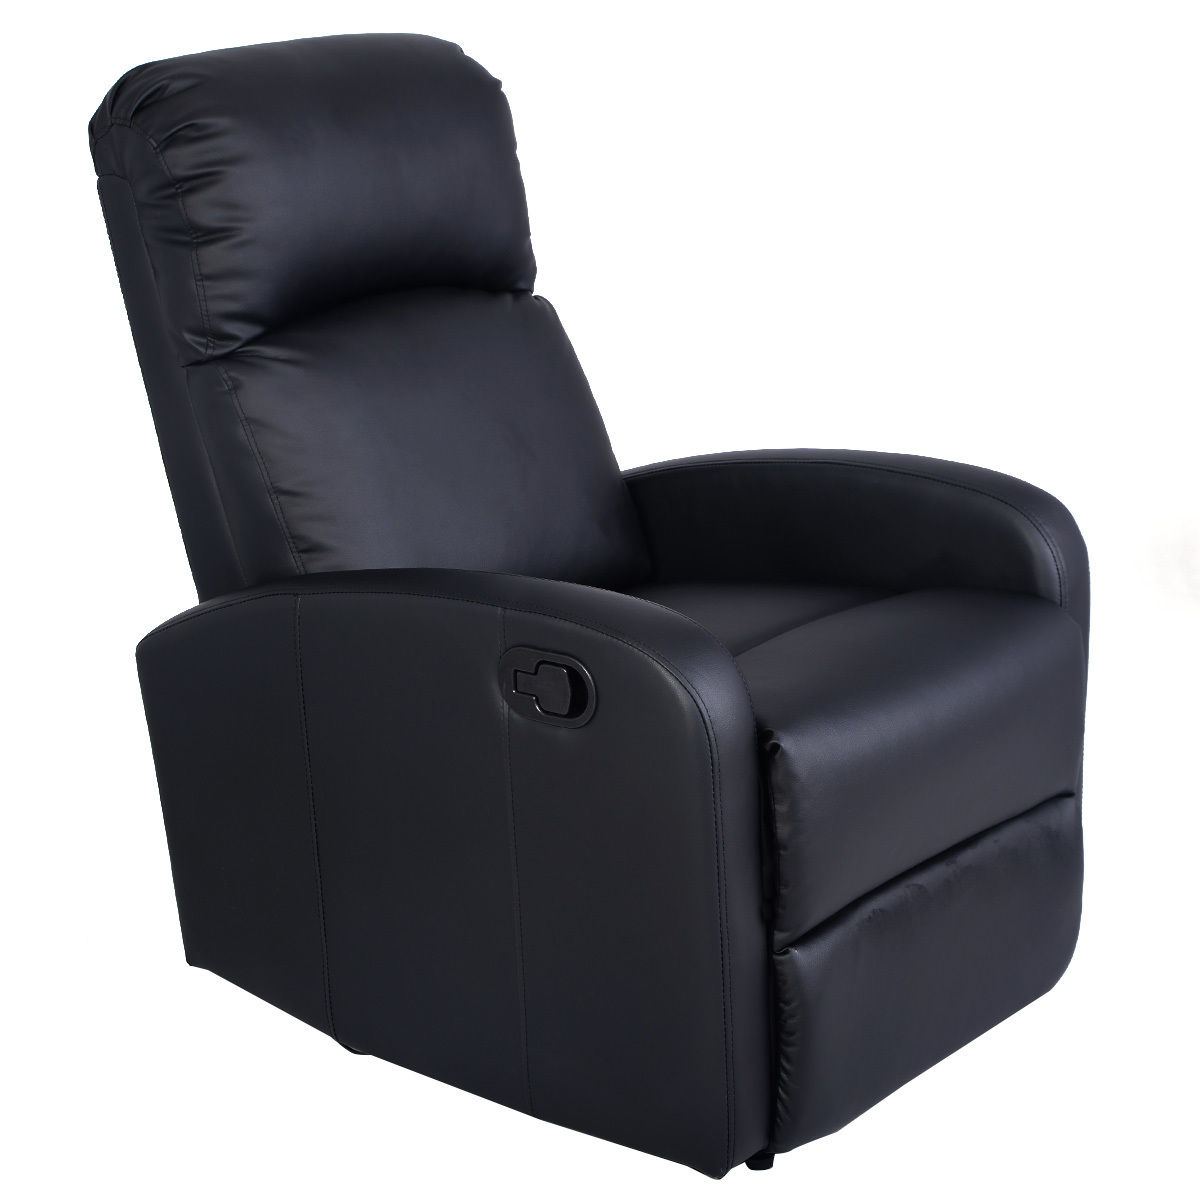 Giantex Manual Recliner Sofa Chair Black Home Living Room Lounger Leather Sofa Seat Theater Leisure Recliner Single Sofa HW51431 recliner